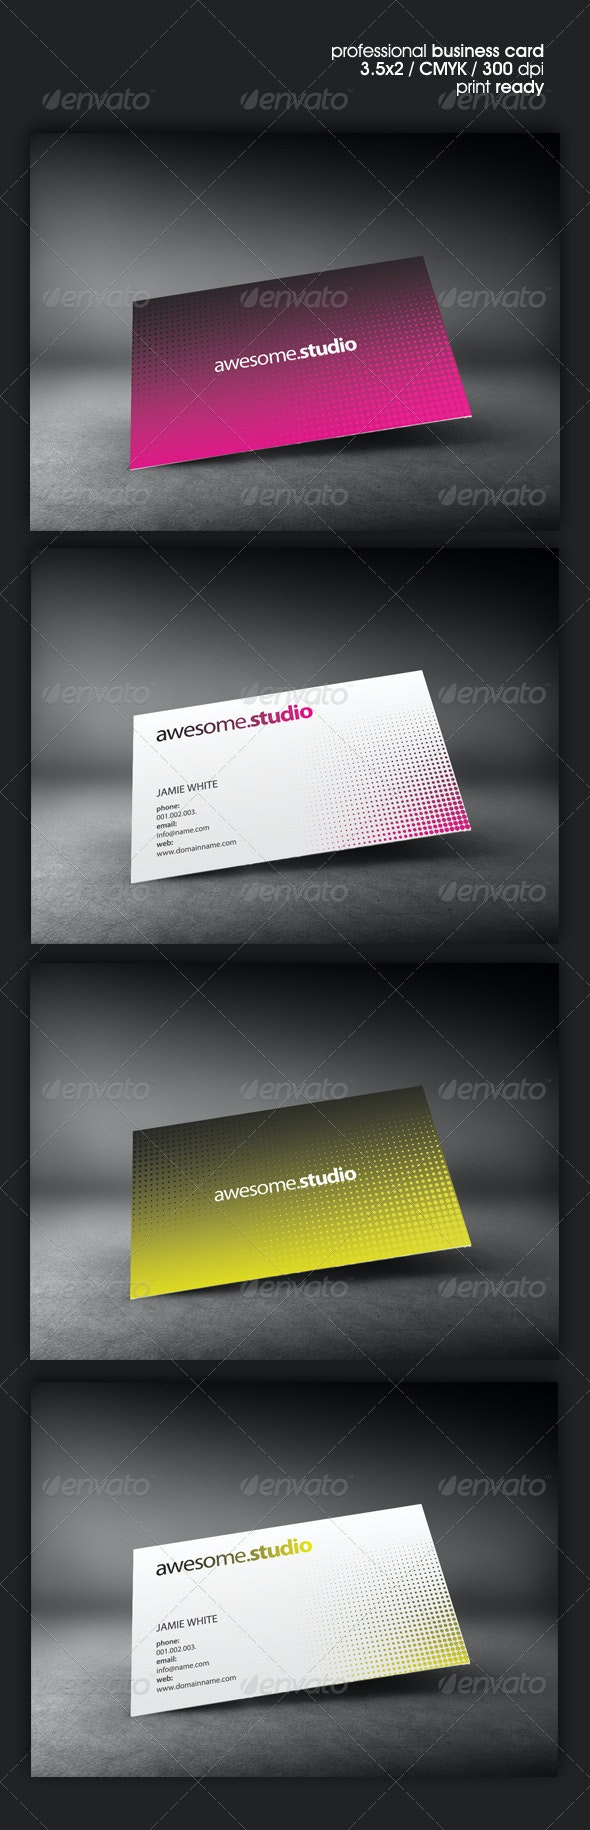 AwesomeStudio Business Cards - Corporate Business Cards